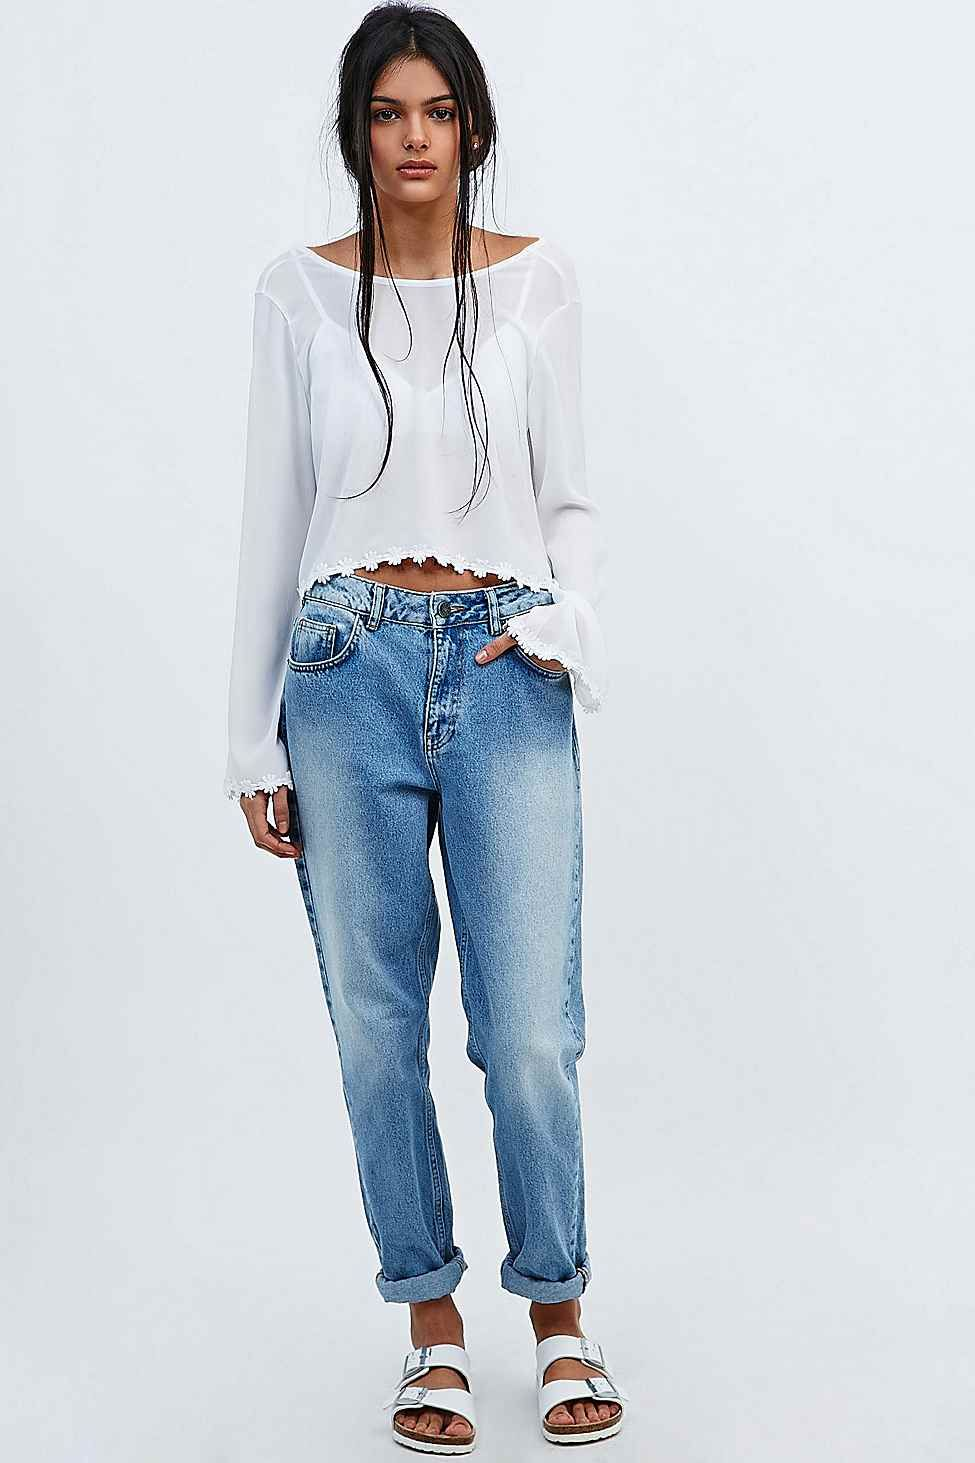 Urban Renewal Vintage Remnants Bell Sleeve Crop Top in White